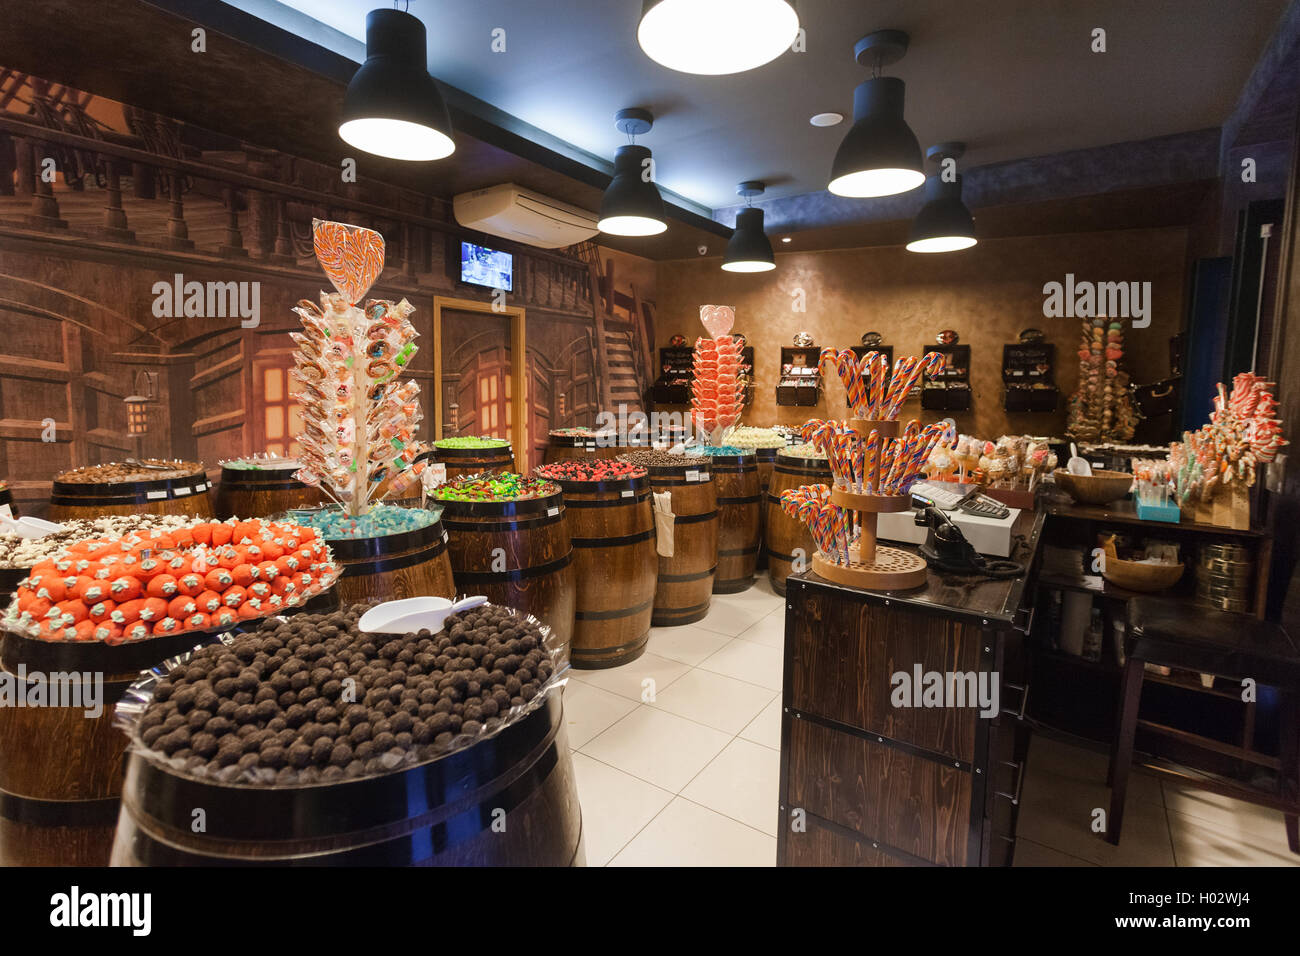 DUBROVNIK CROATIA  MAY 28 2014 Interior of the Candy